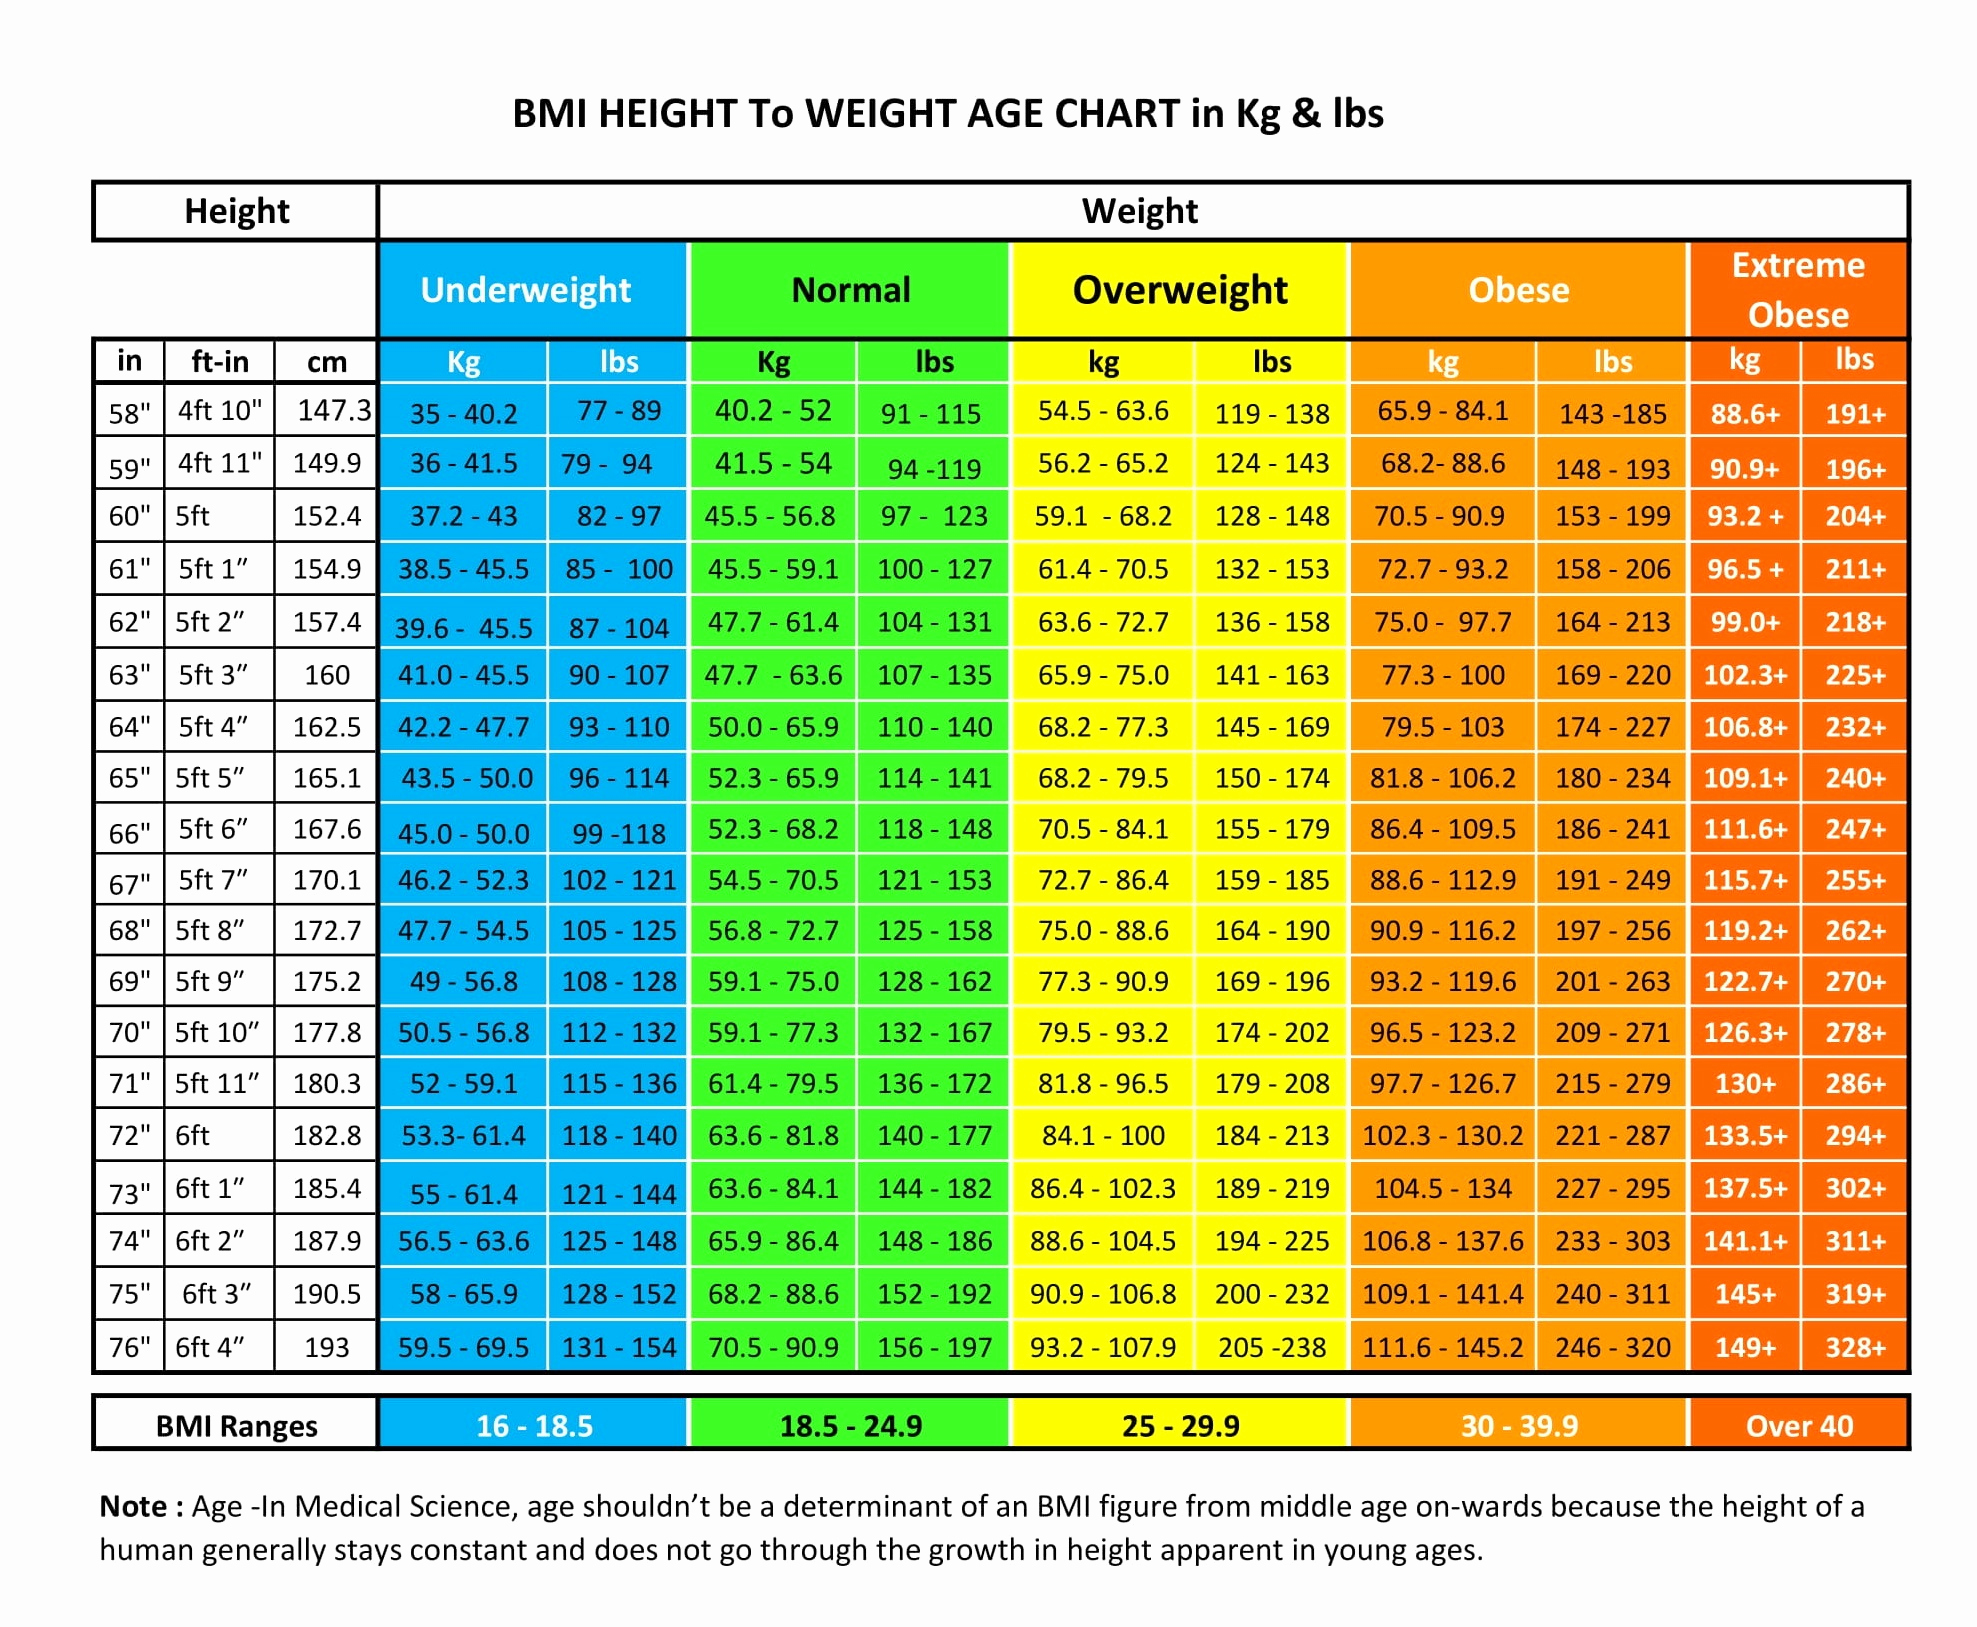 Weight Height Age Charts Lovely How Much Should I Weigh for My Height & Age Nutrilove